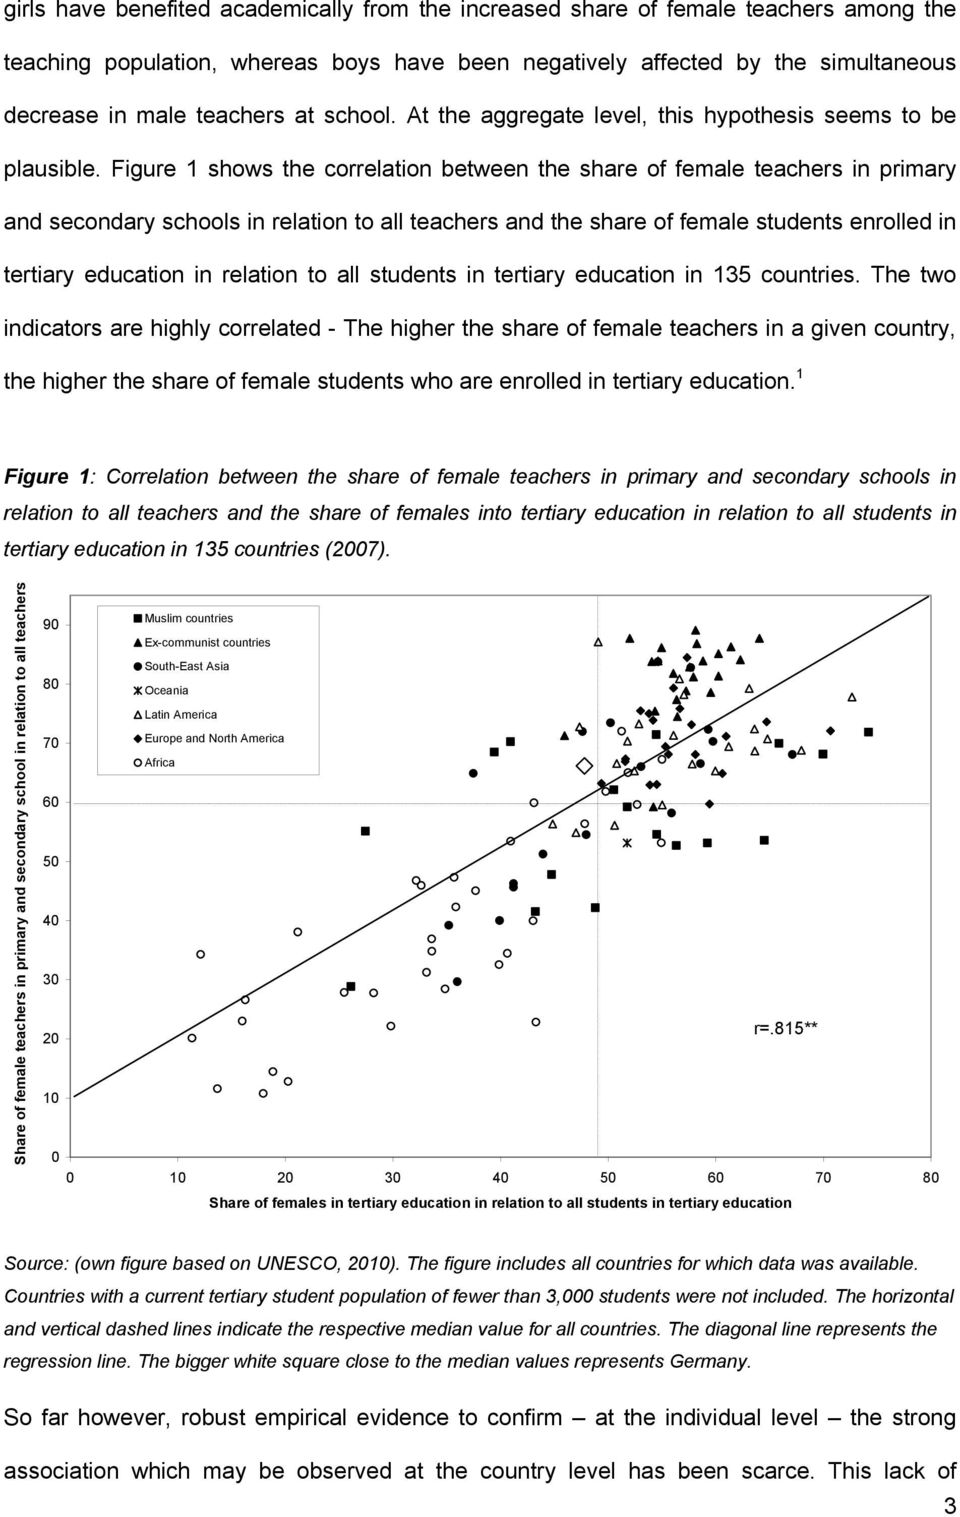 Figure 1 shows the correlation between the share of female teachers in primary and secondary schools in relation to all teachers and the share of female students enrolled in tertiary education in